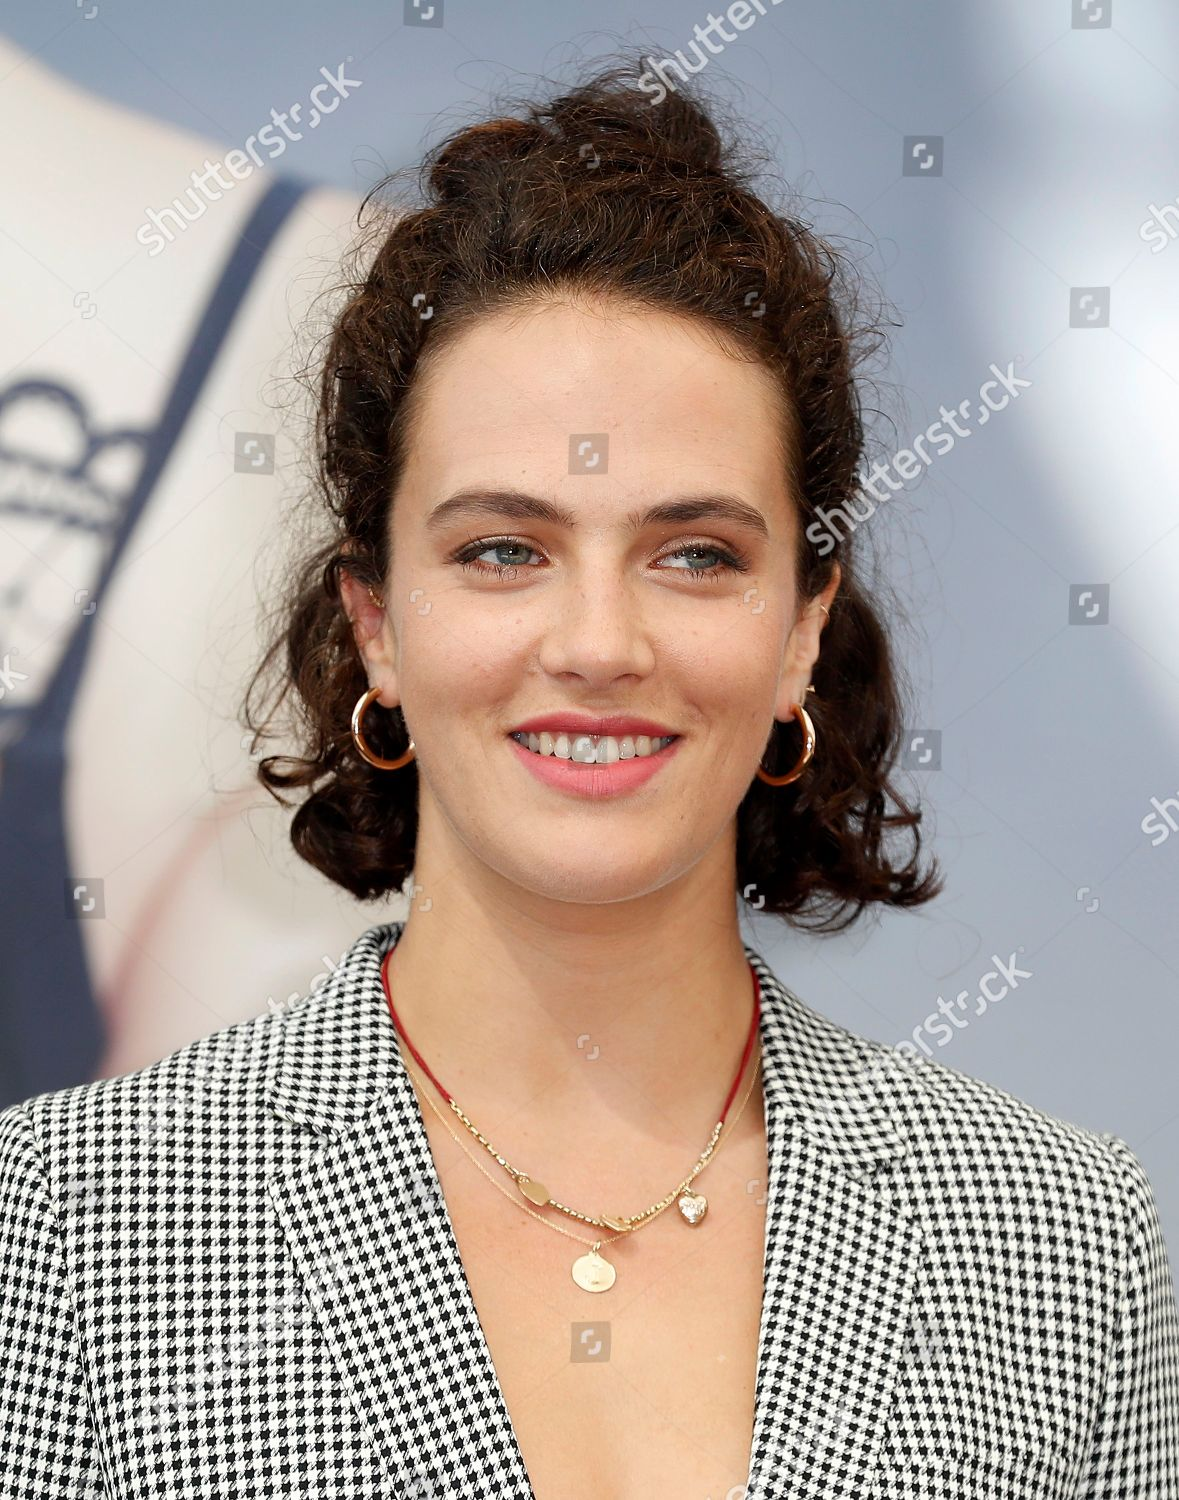 Jessica brown findlay 58th monte carlo television festival closing ceremony 6 - 2019 year